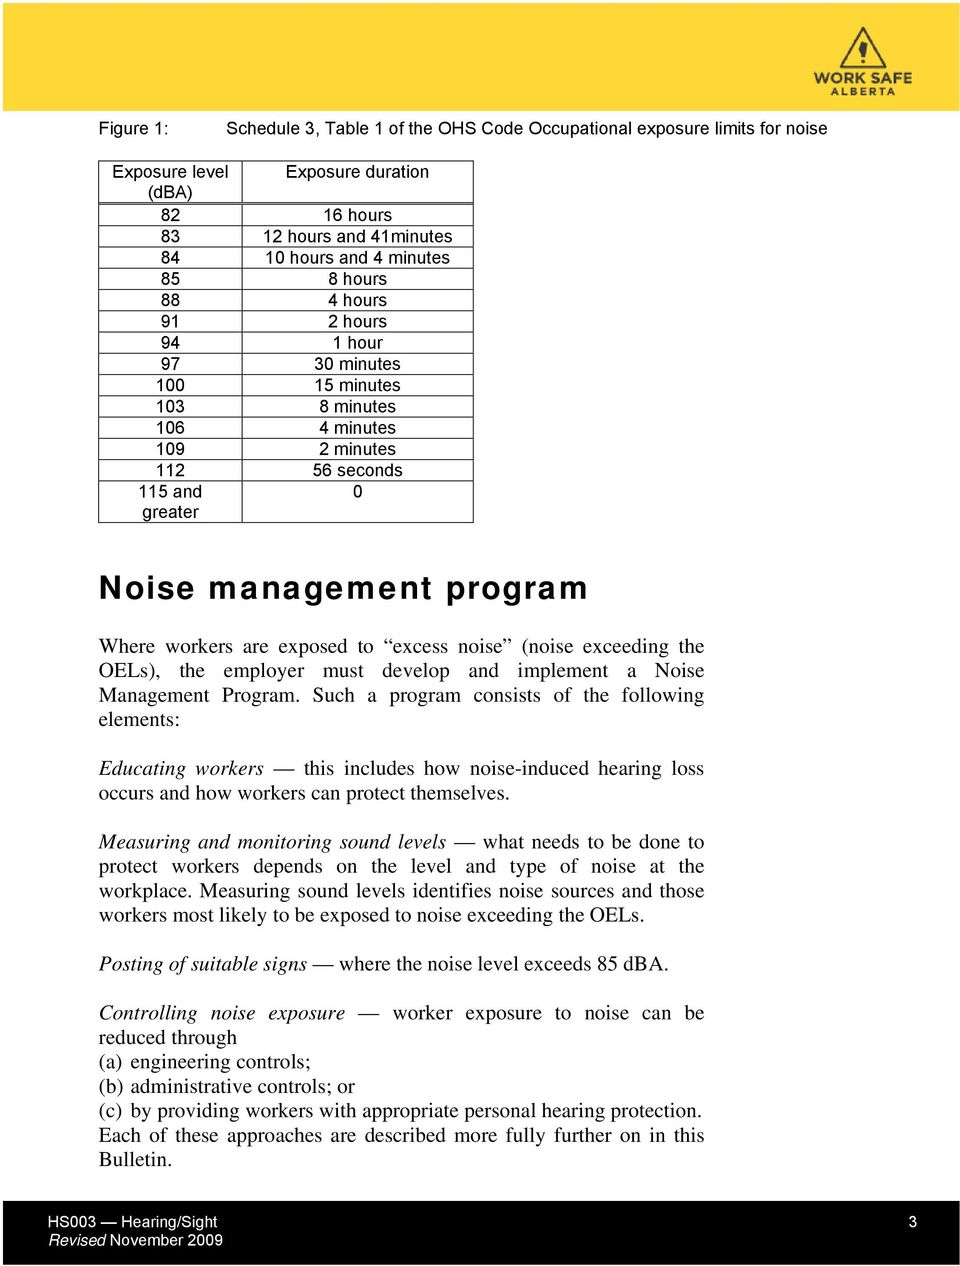 noise (noise exceeding the OELs), the employer must develop and implement a Noise Management Program.